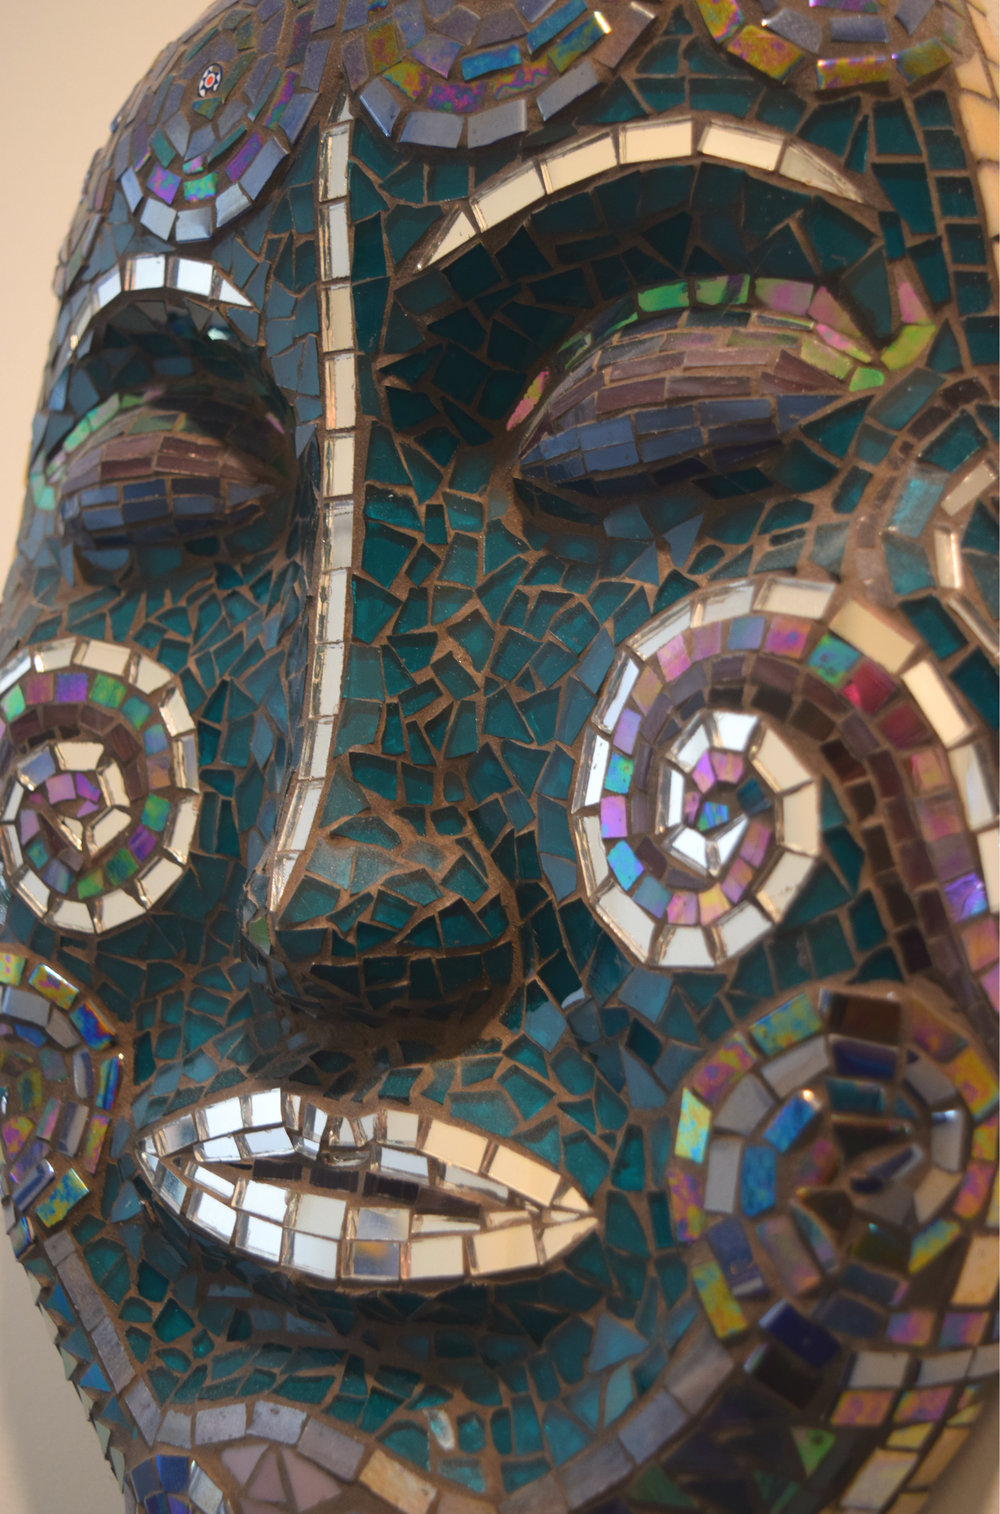 Spiraled Mask (Stained Glass, Millefiori, Mirror, Glass Tiles)